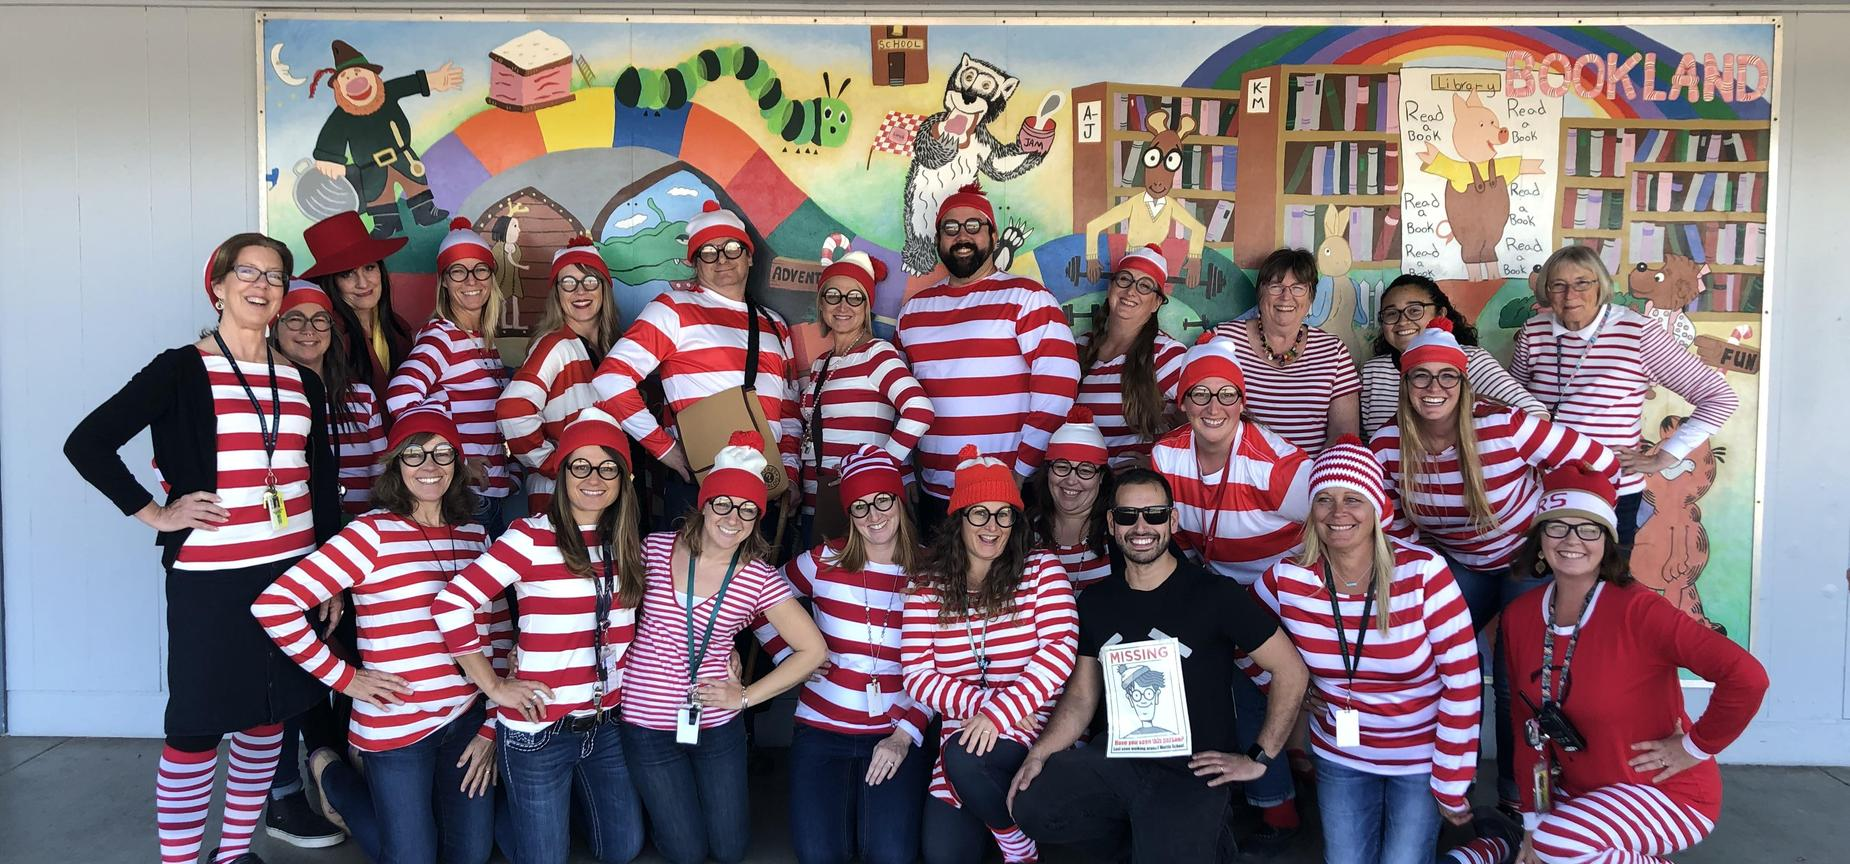 staff members dressed up for halloween as Waldo